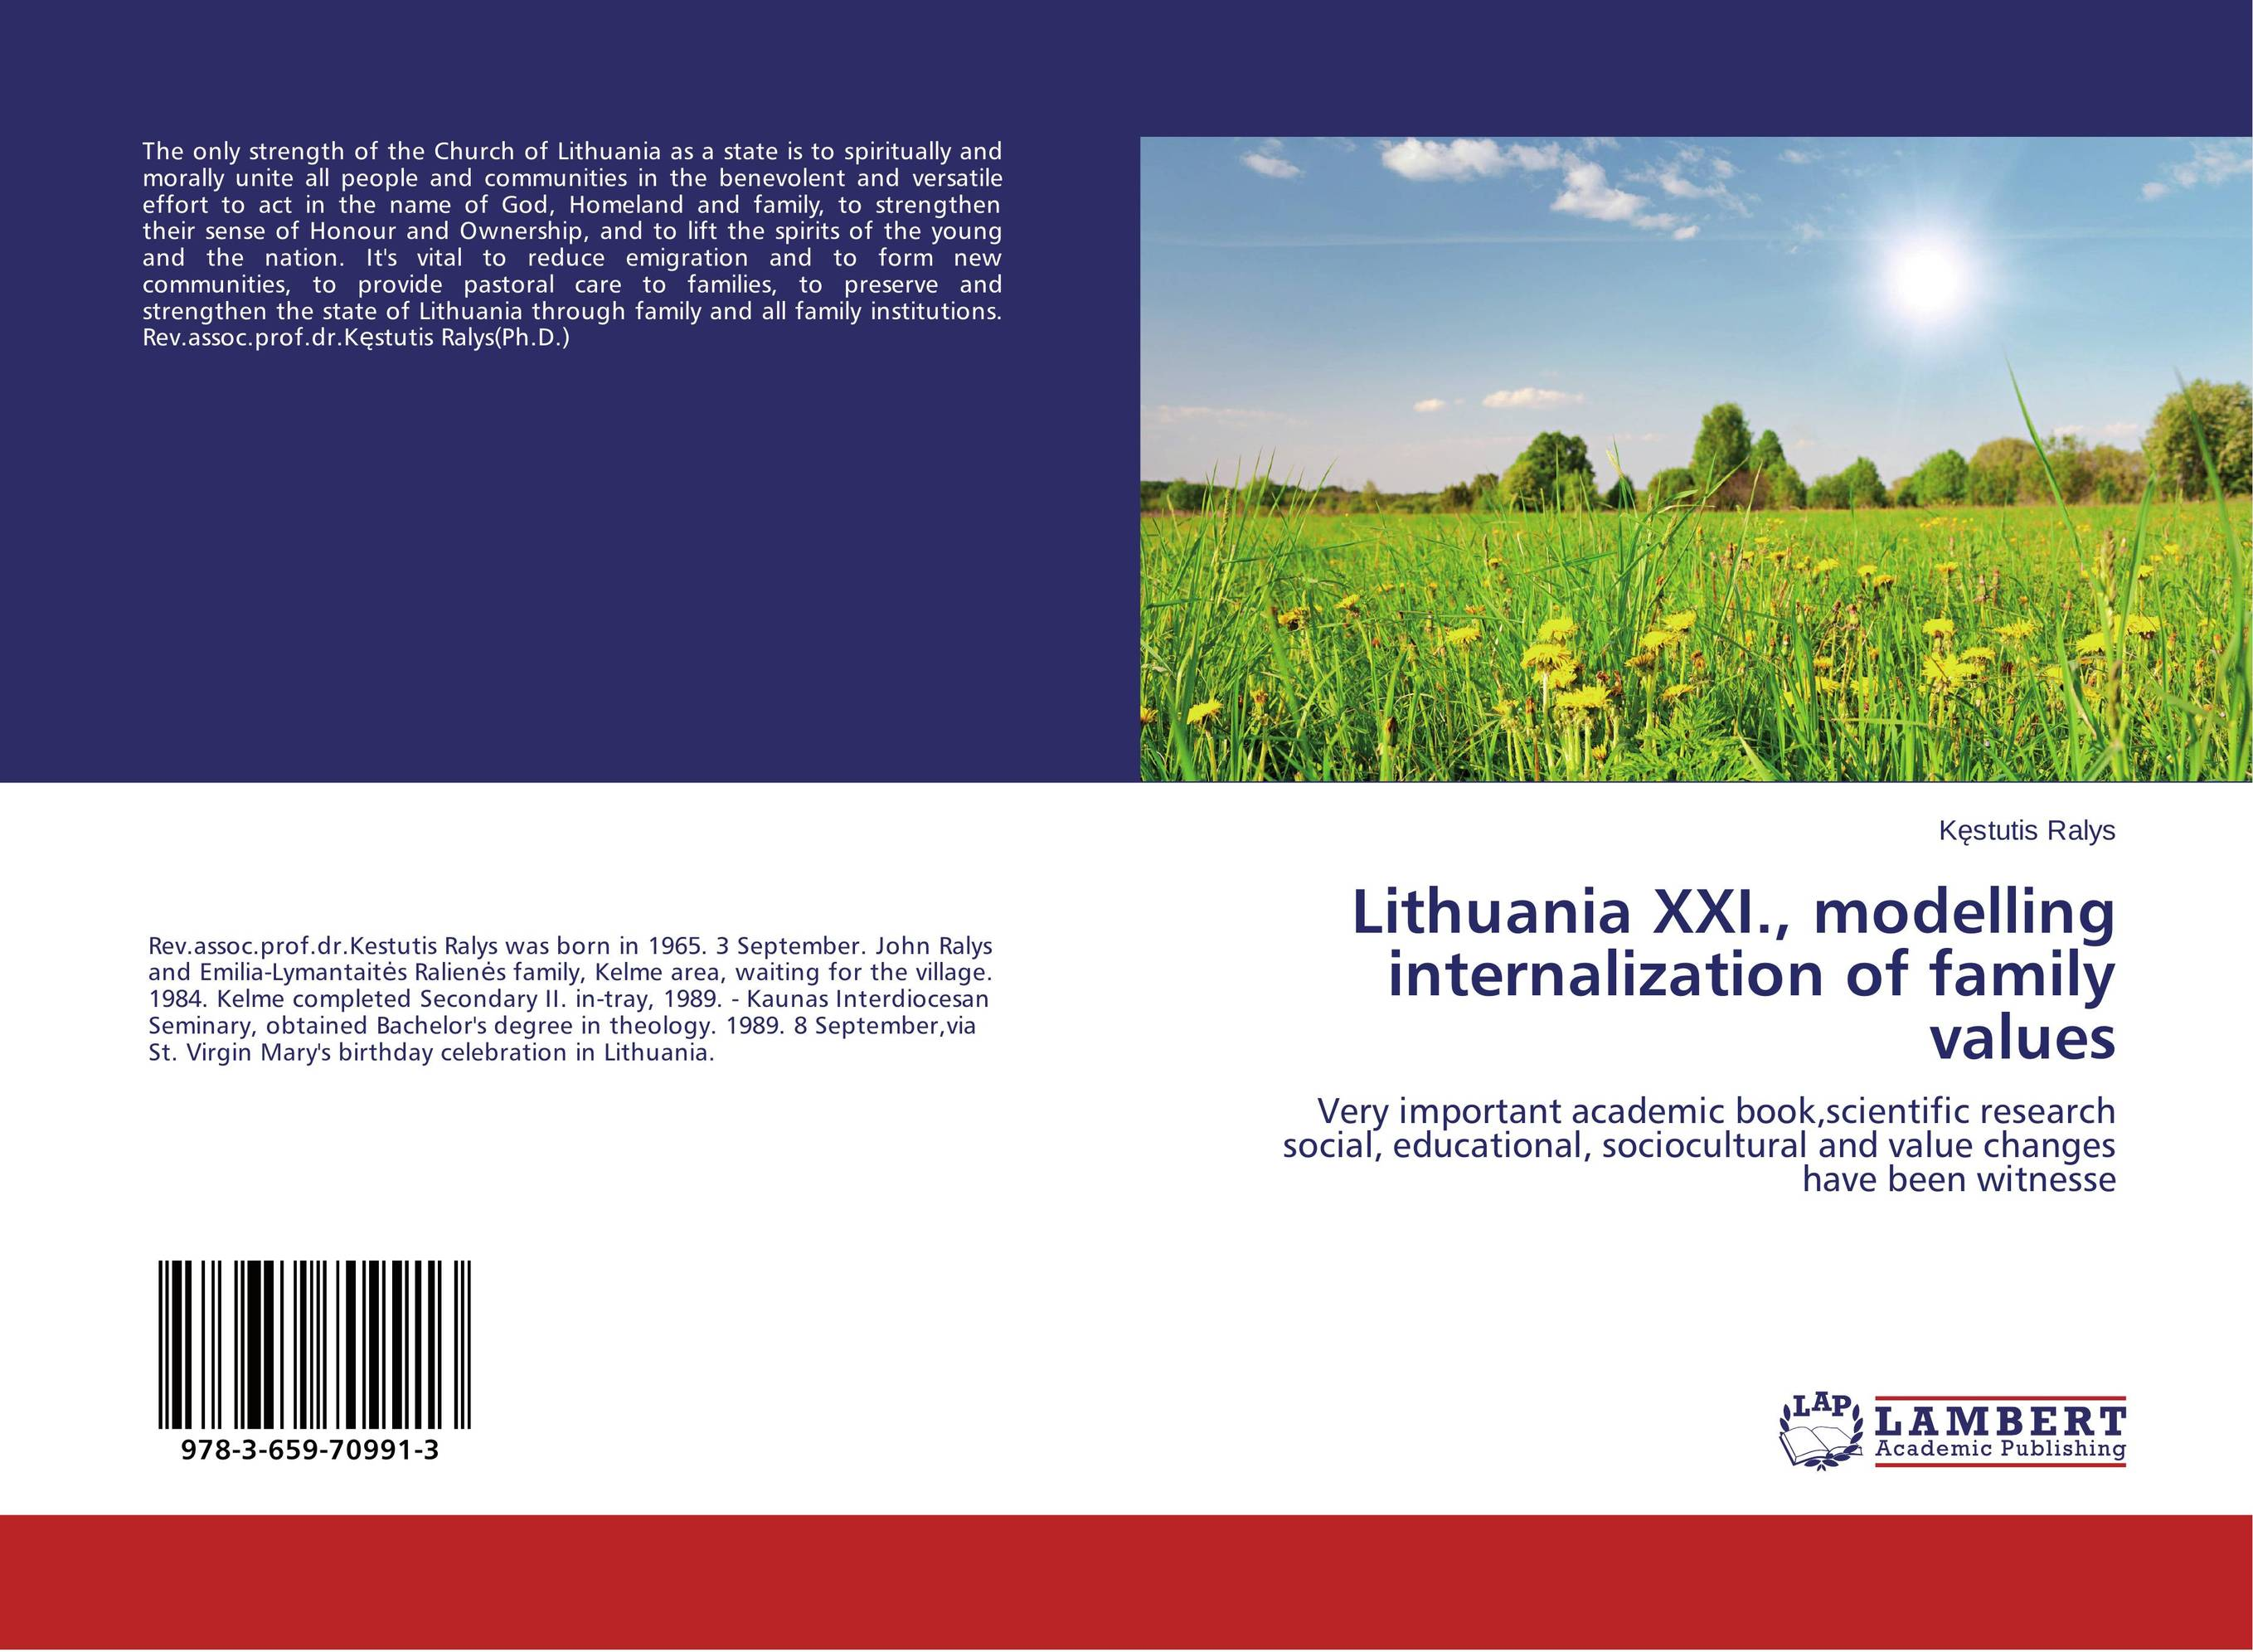 Lithuania XXI., modelling internalization of family values affair of state an